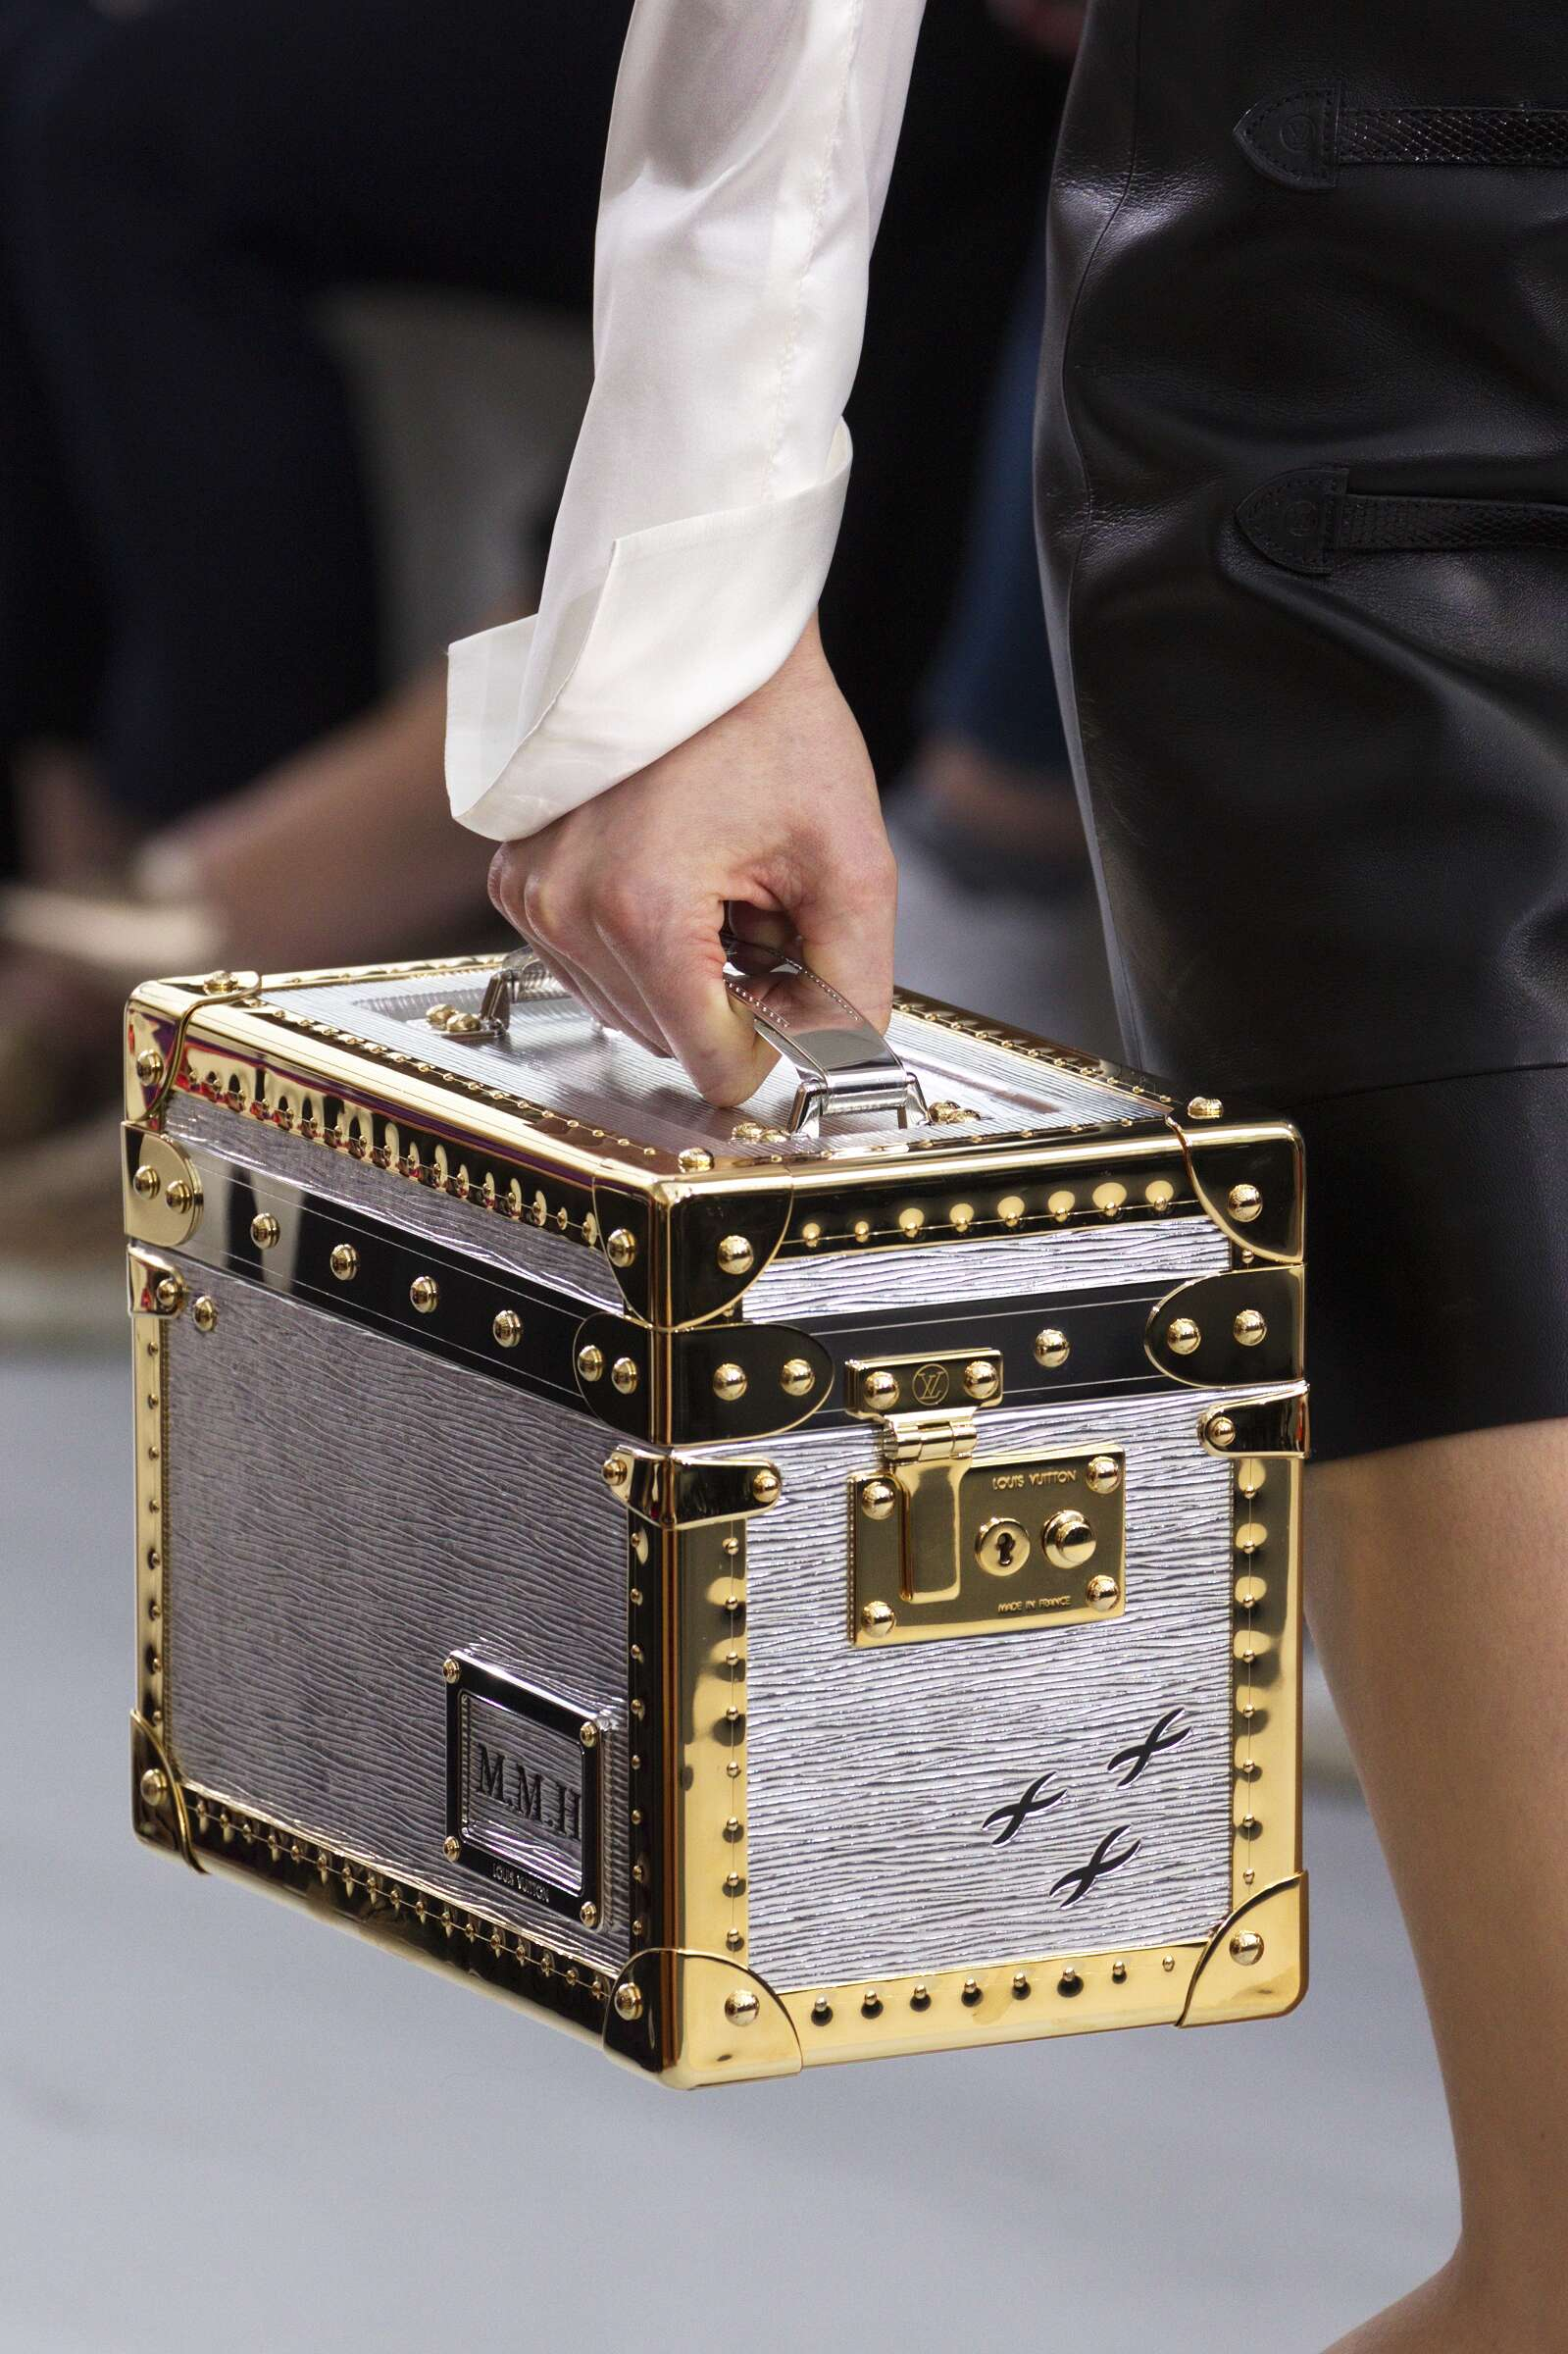 2015 Winter Fashion Show Louis Vuitton Bag Details Collection